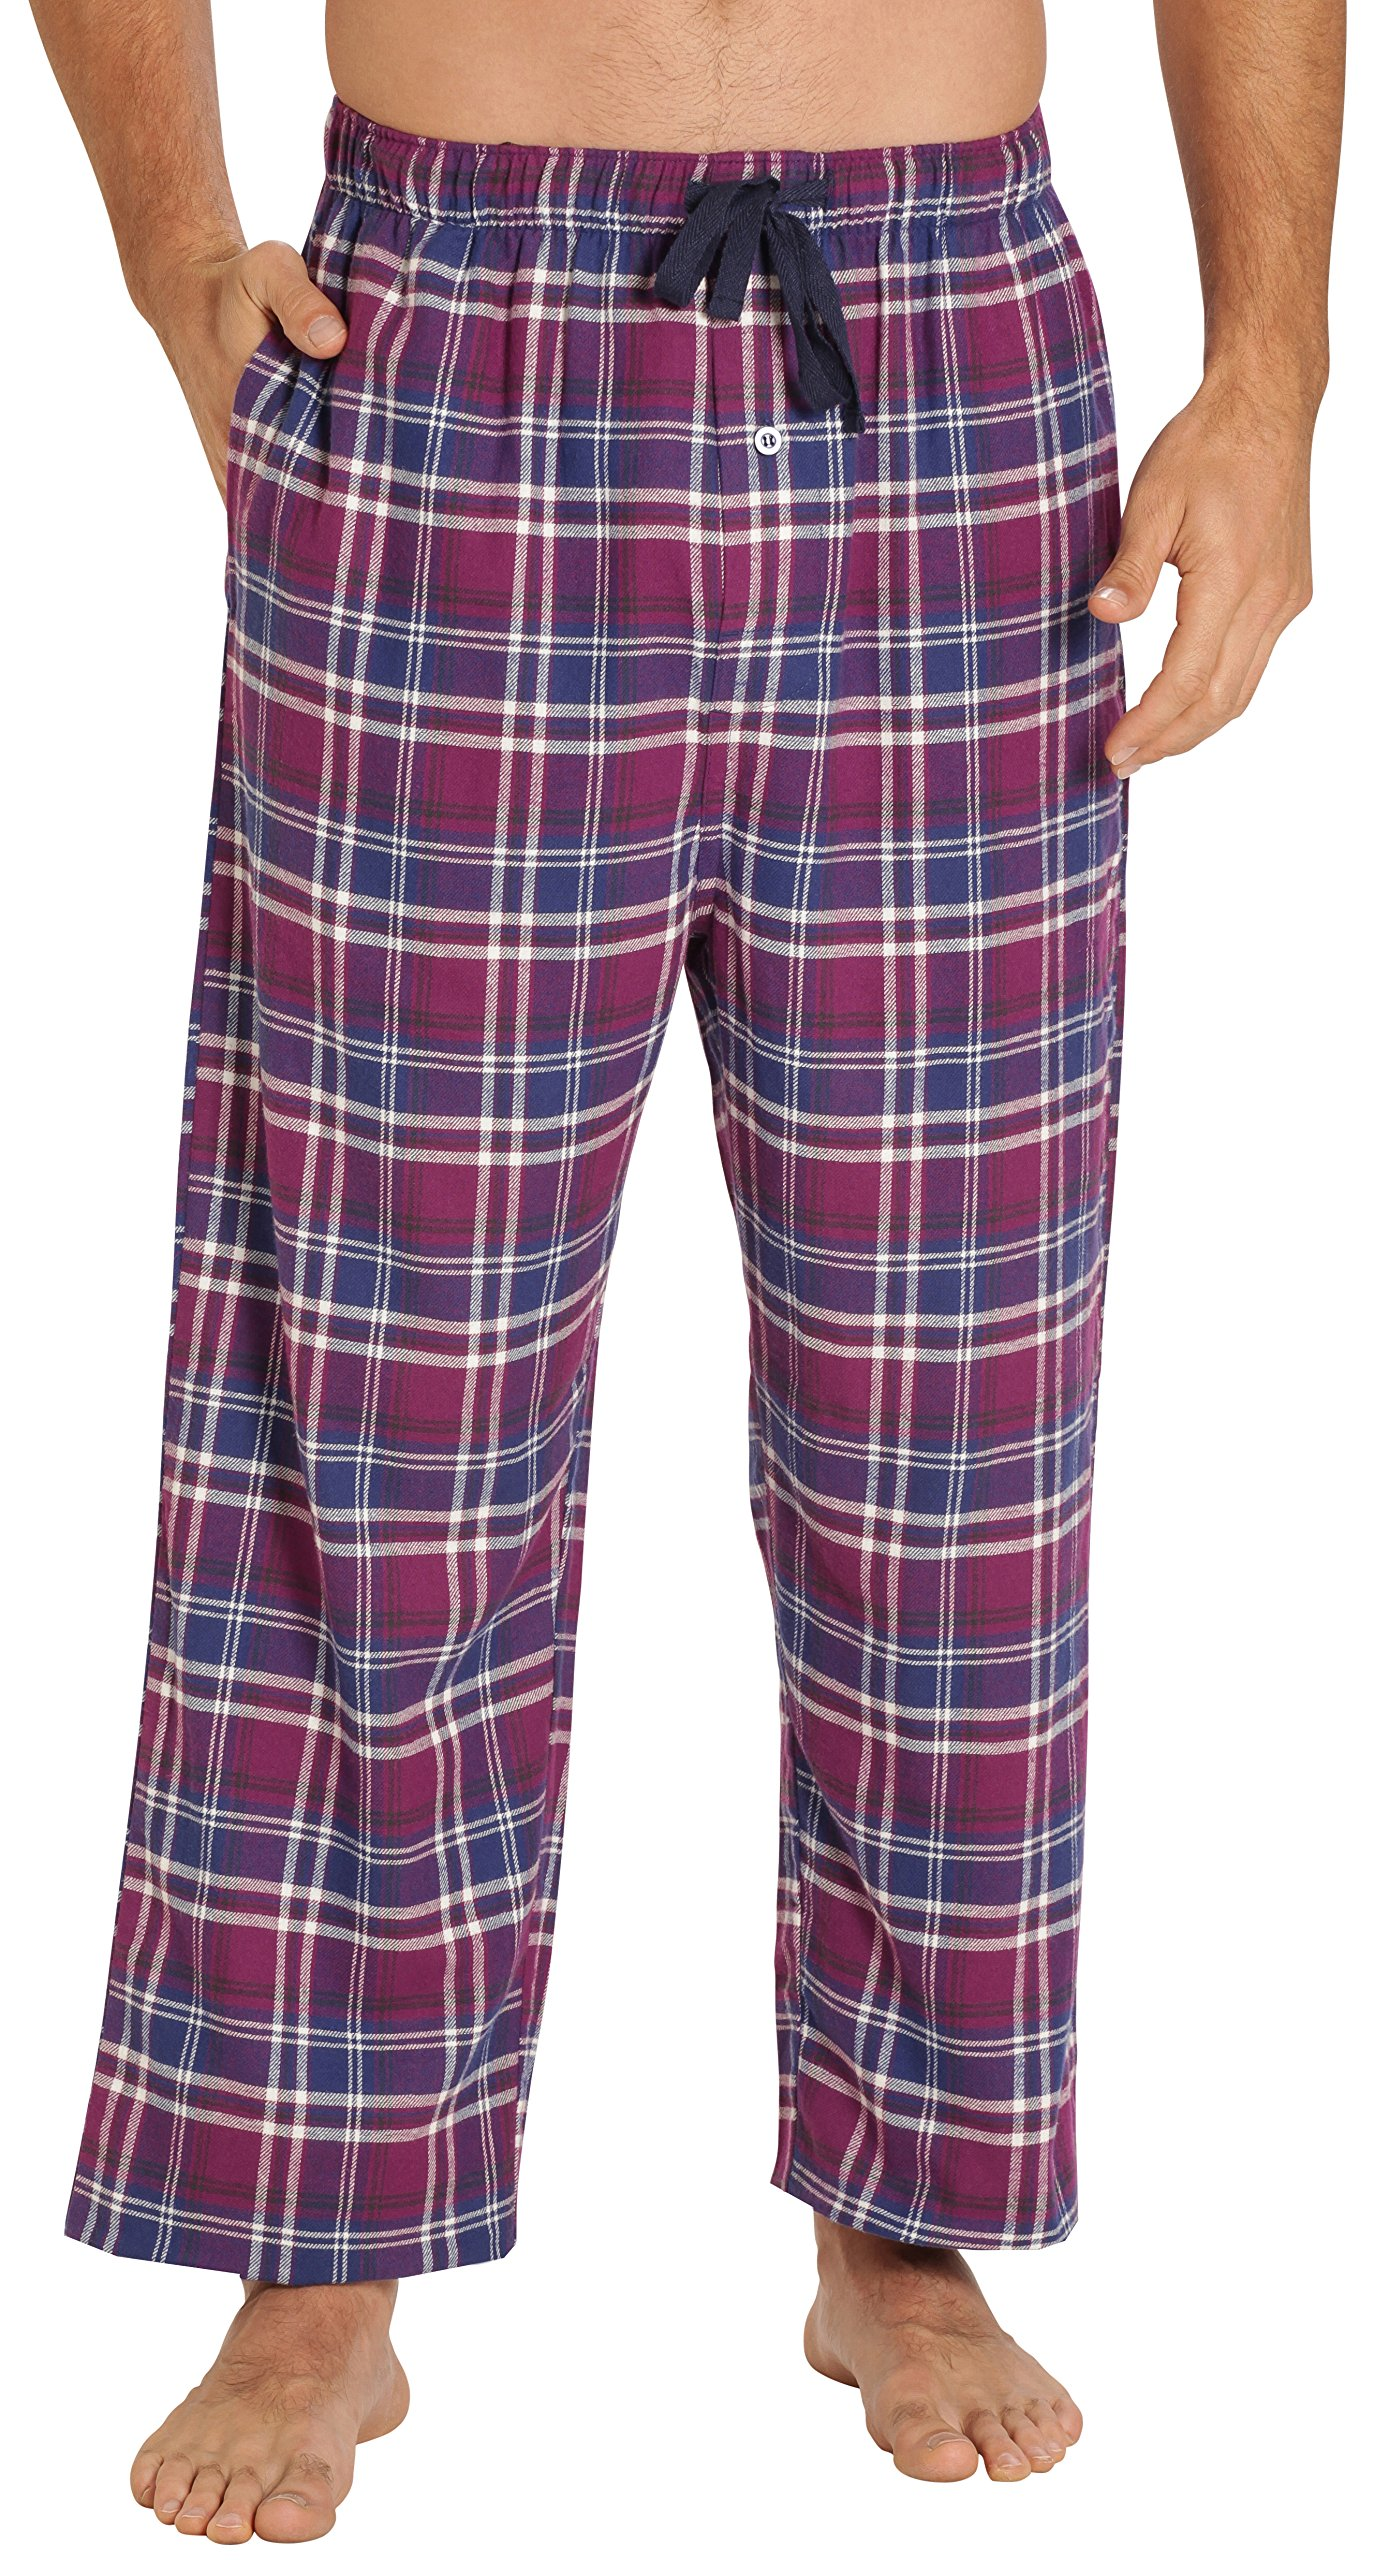 EVERDREAM Sleepwear Mens Flannel Pajama Pants, Long 100% Cotton Pj Bottoms,Size Large Purple